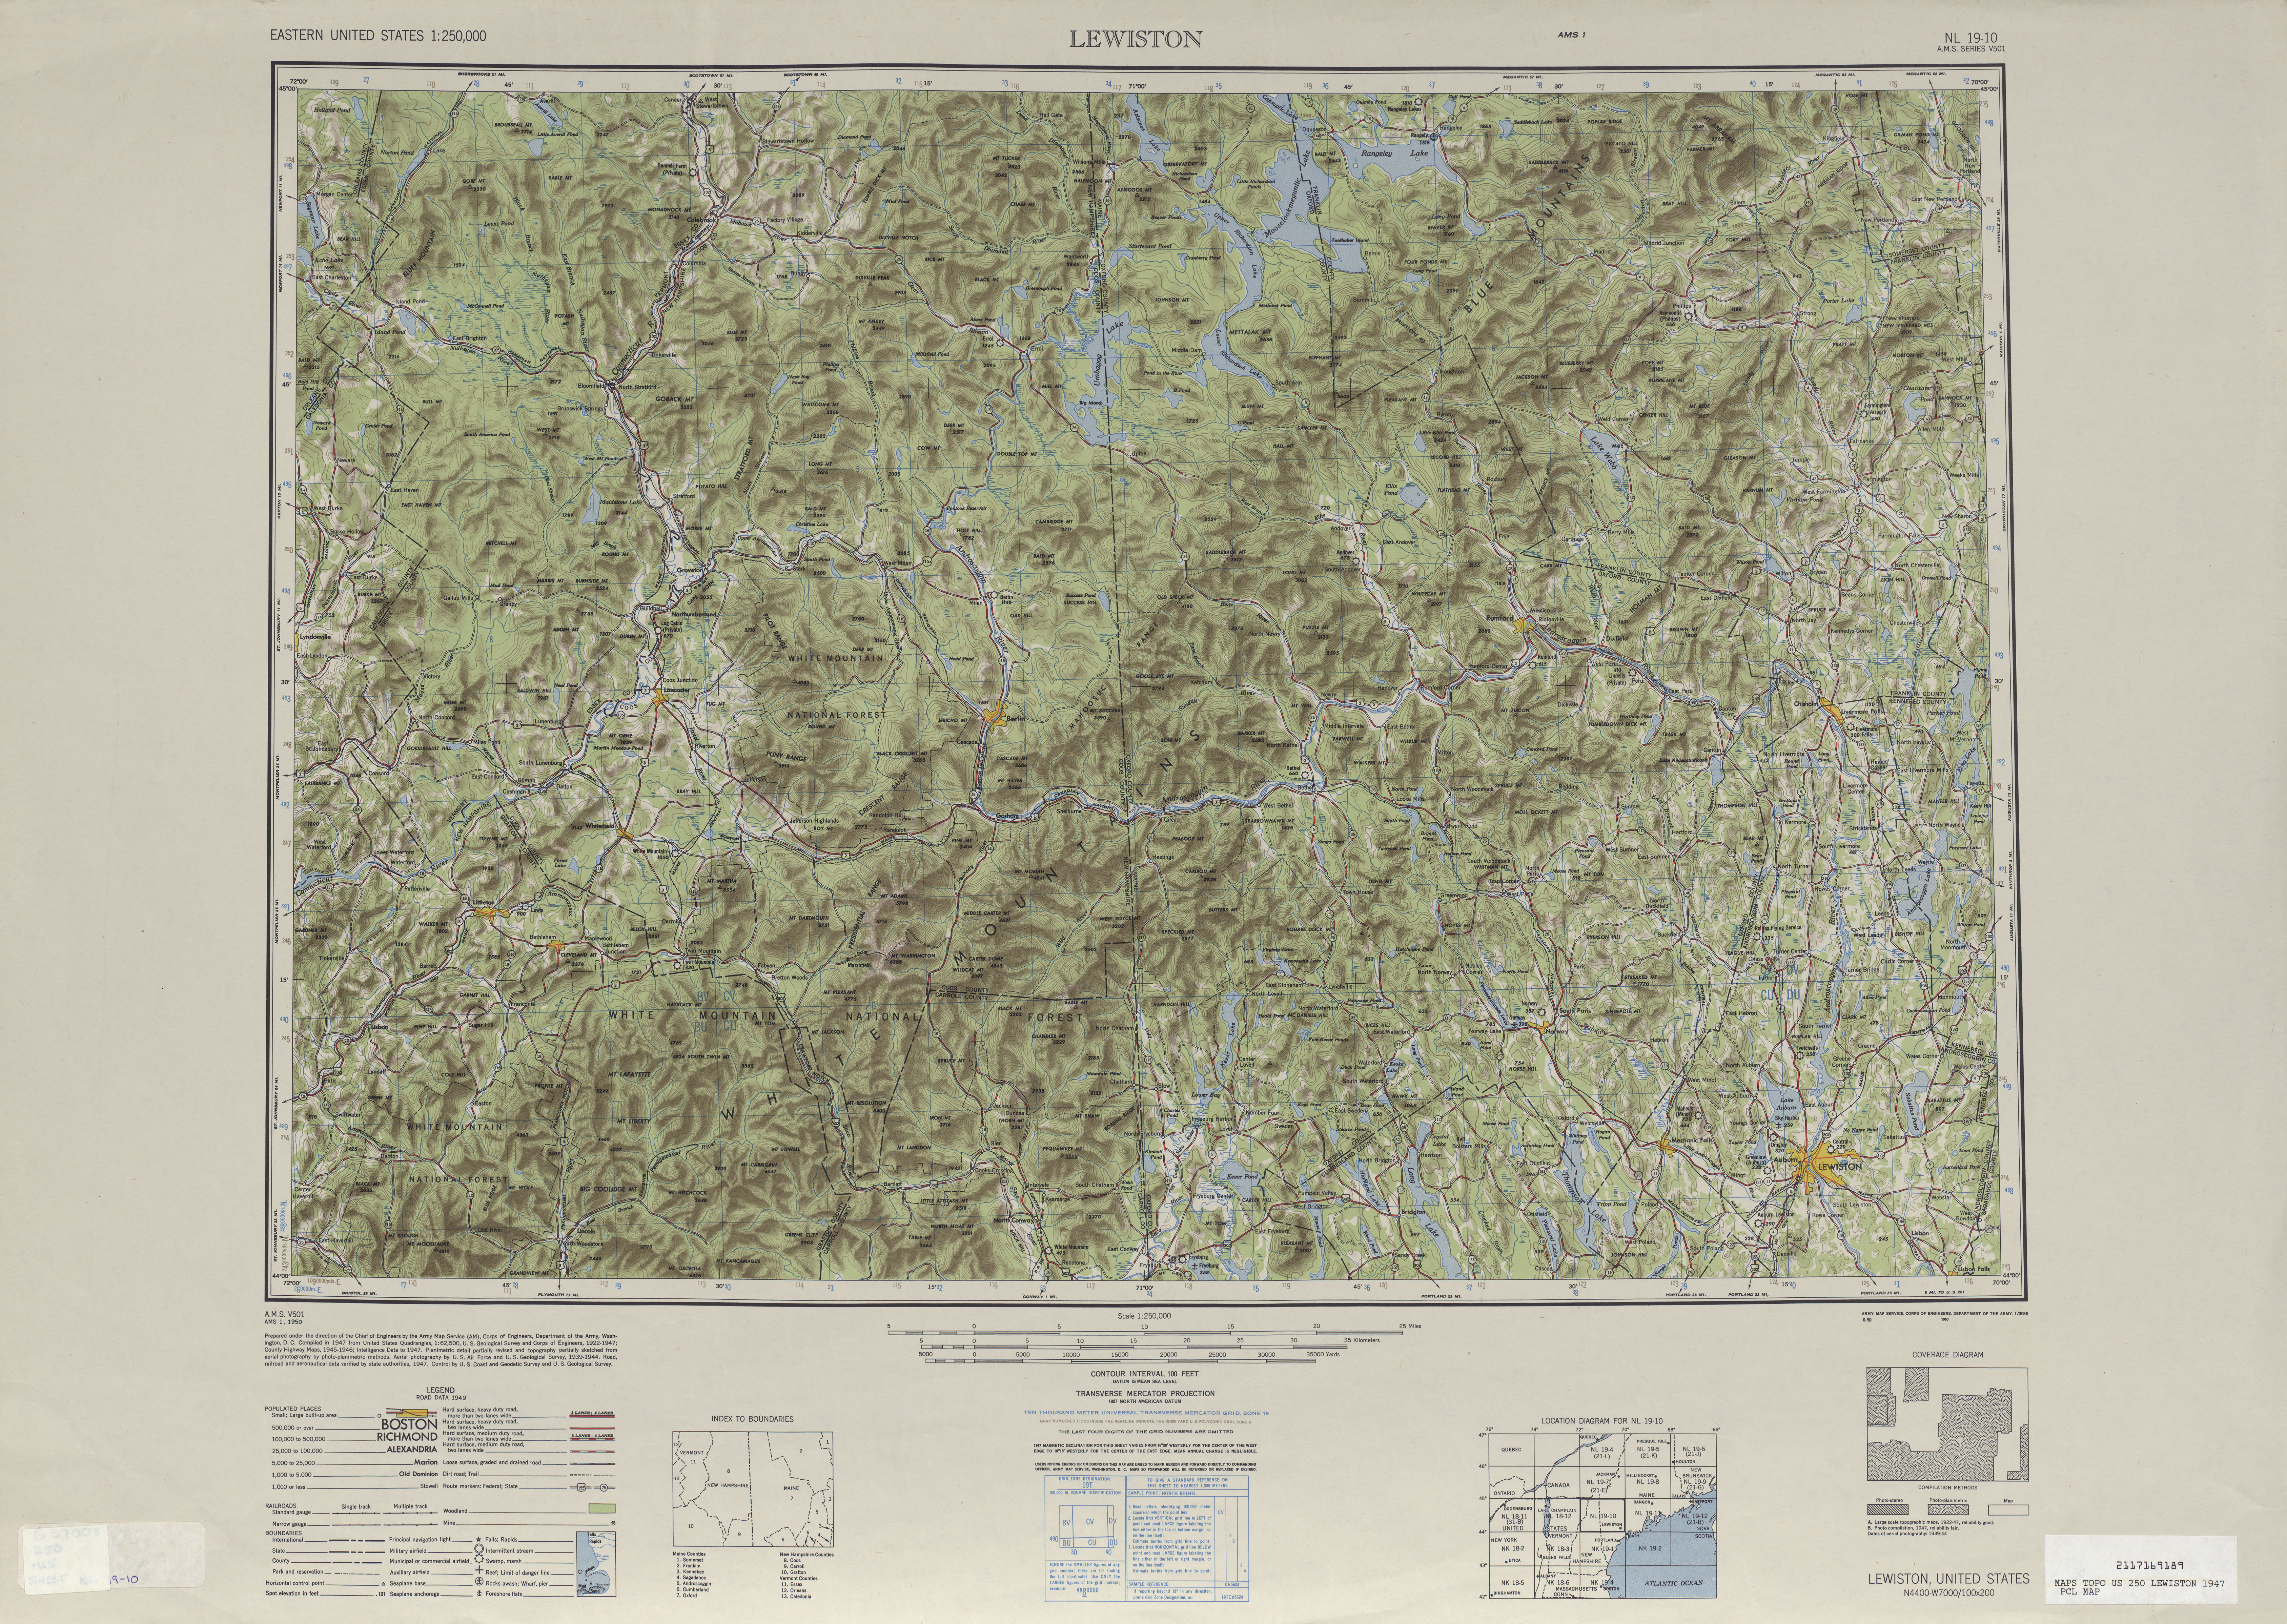 Lewiston Shaded Relief Map Sheet, United States 1947